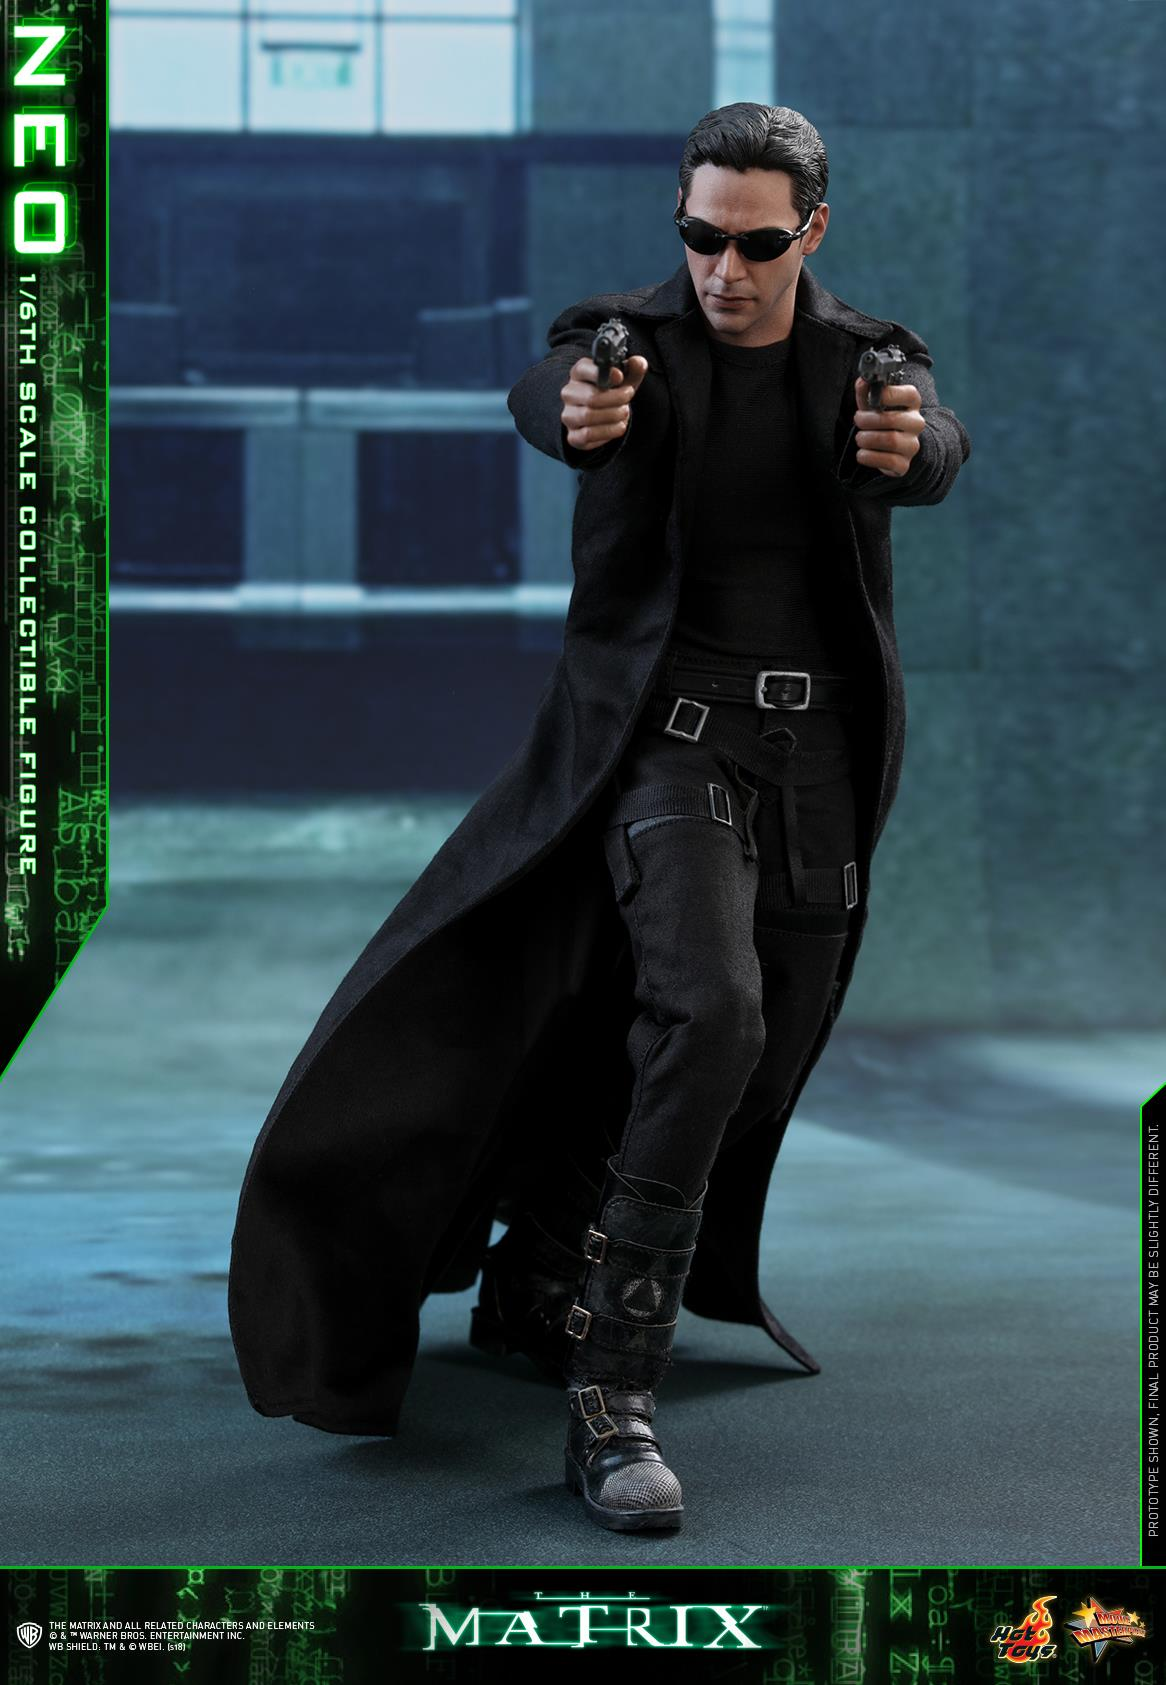 The Matrix Neo Figure by Hot Toys | Sideshow Collectibles |Matrix Neo